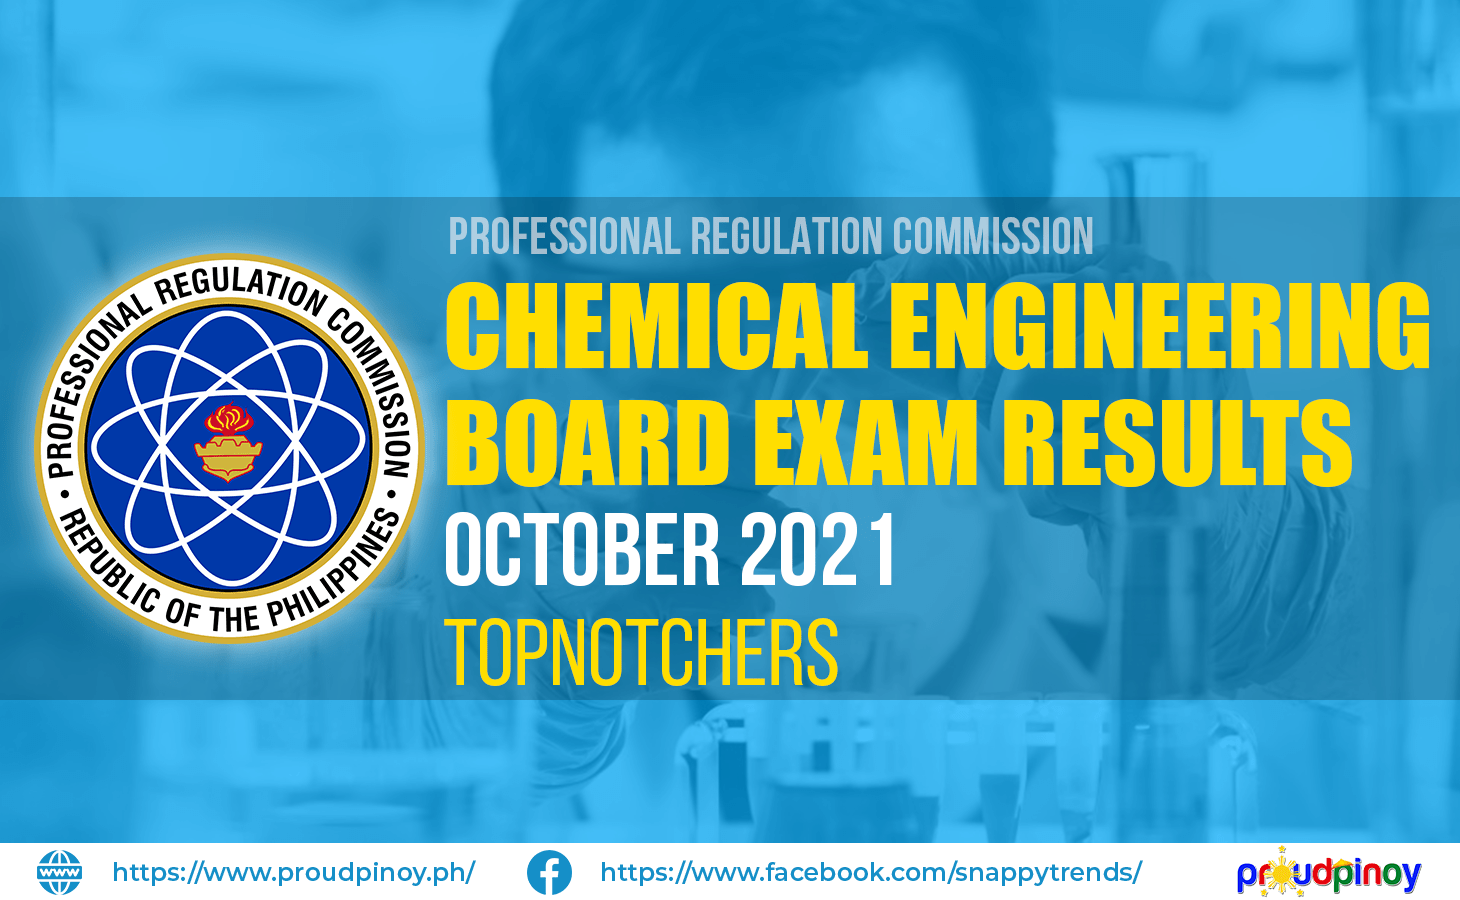 Chemical Engineering Exam Results October 2021 Topnotchers